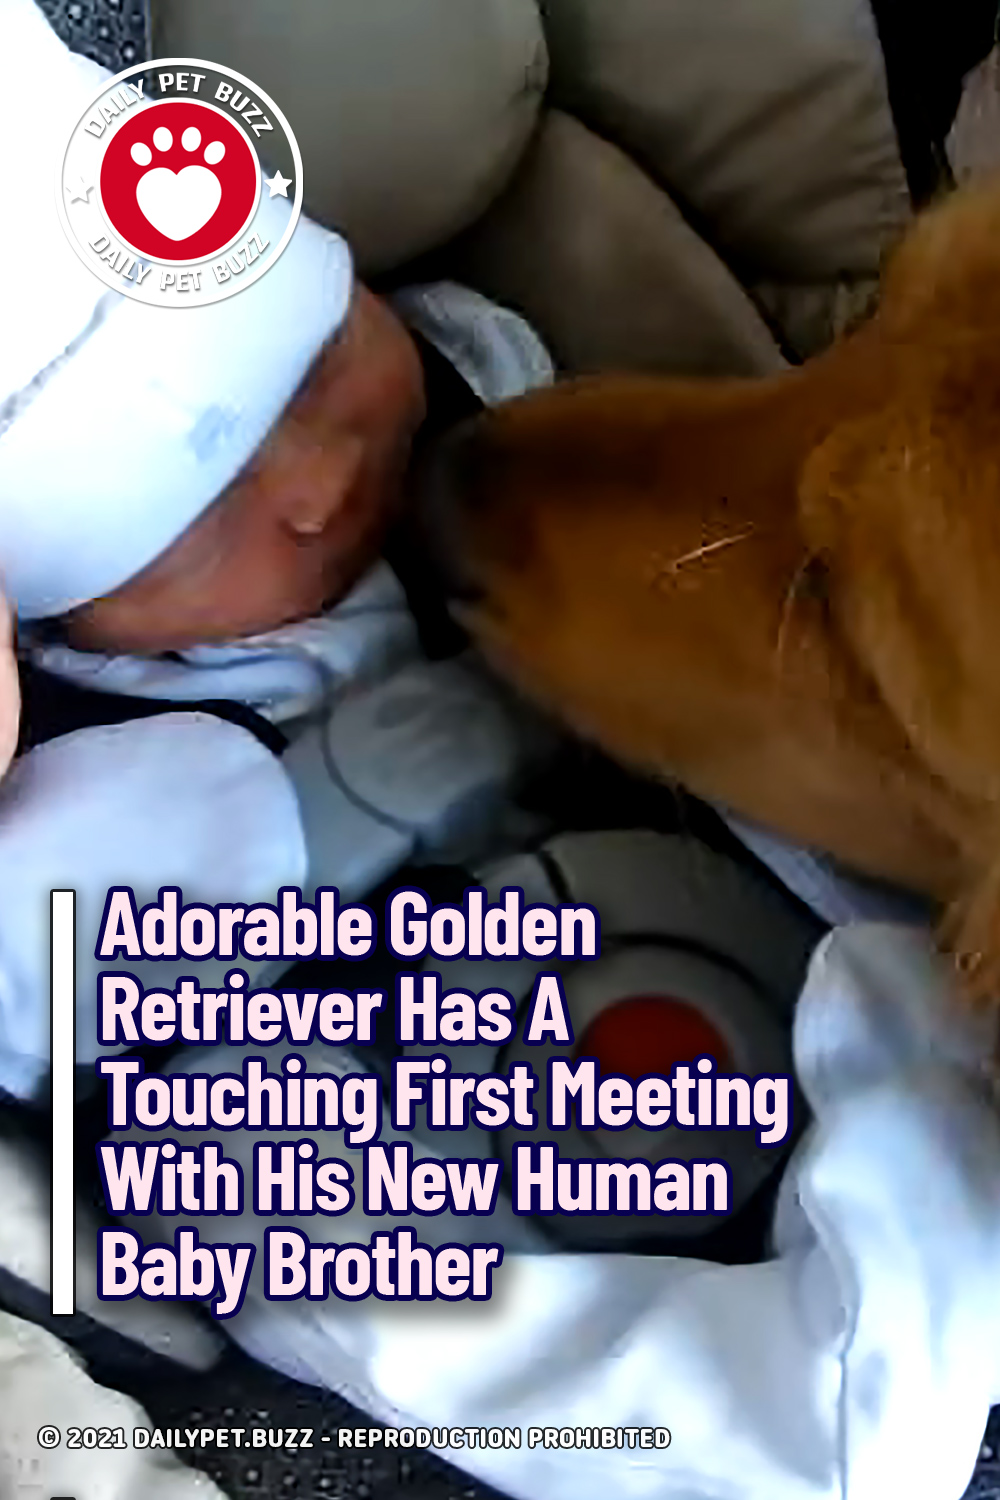 Adorable Golden Retriever Has A Touching First Meeting With His New Human Baby Brother